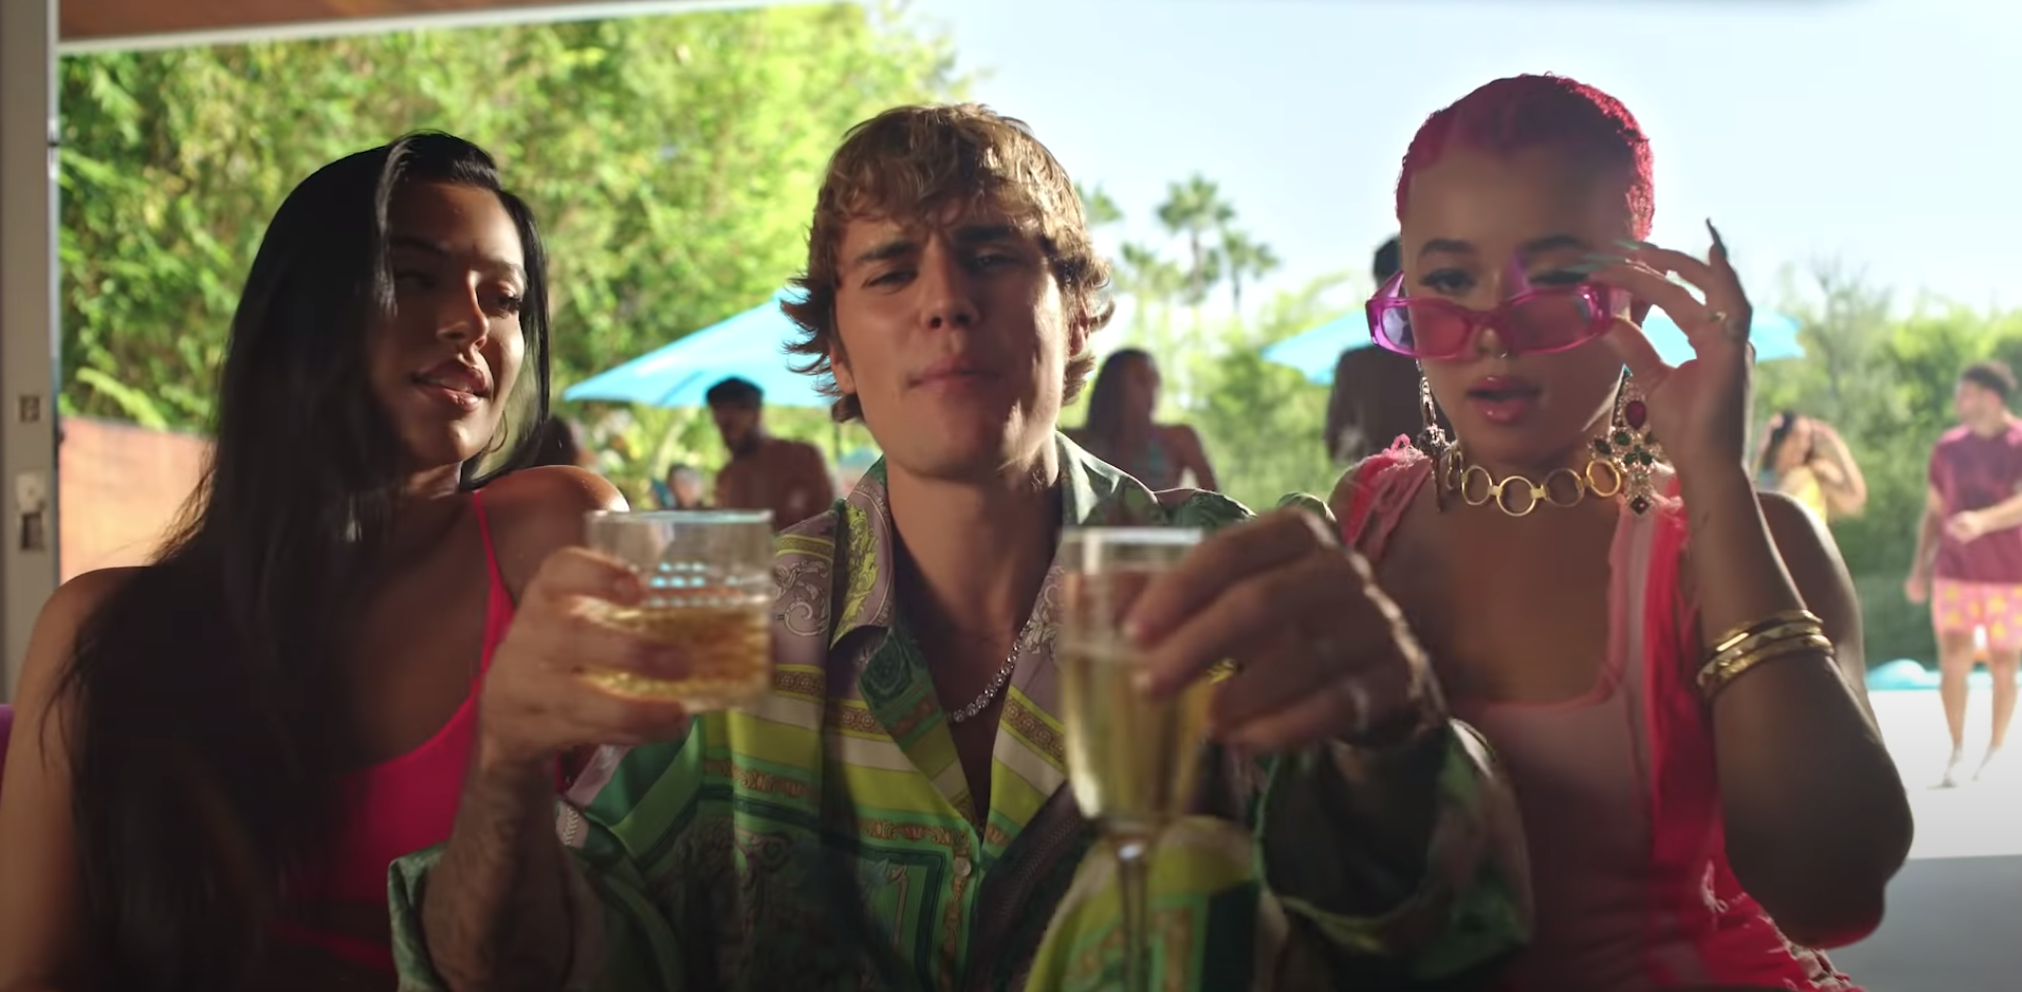 Justin sits among guests with drinks in his hands